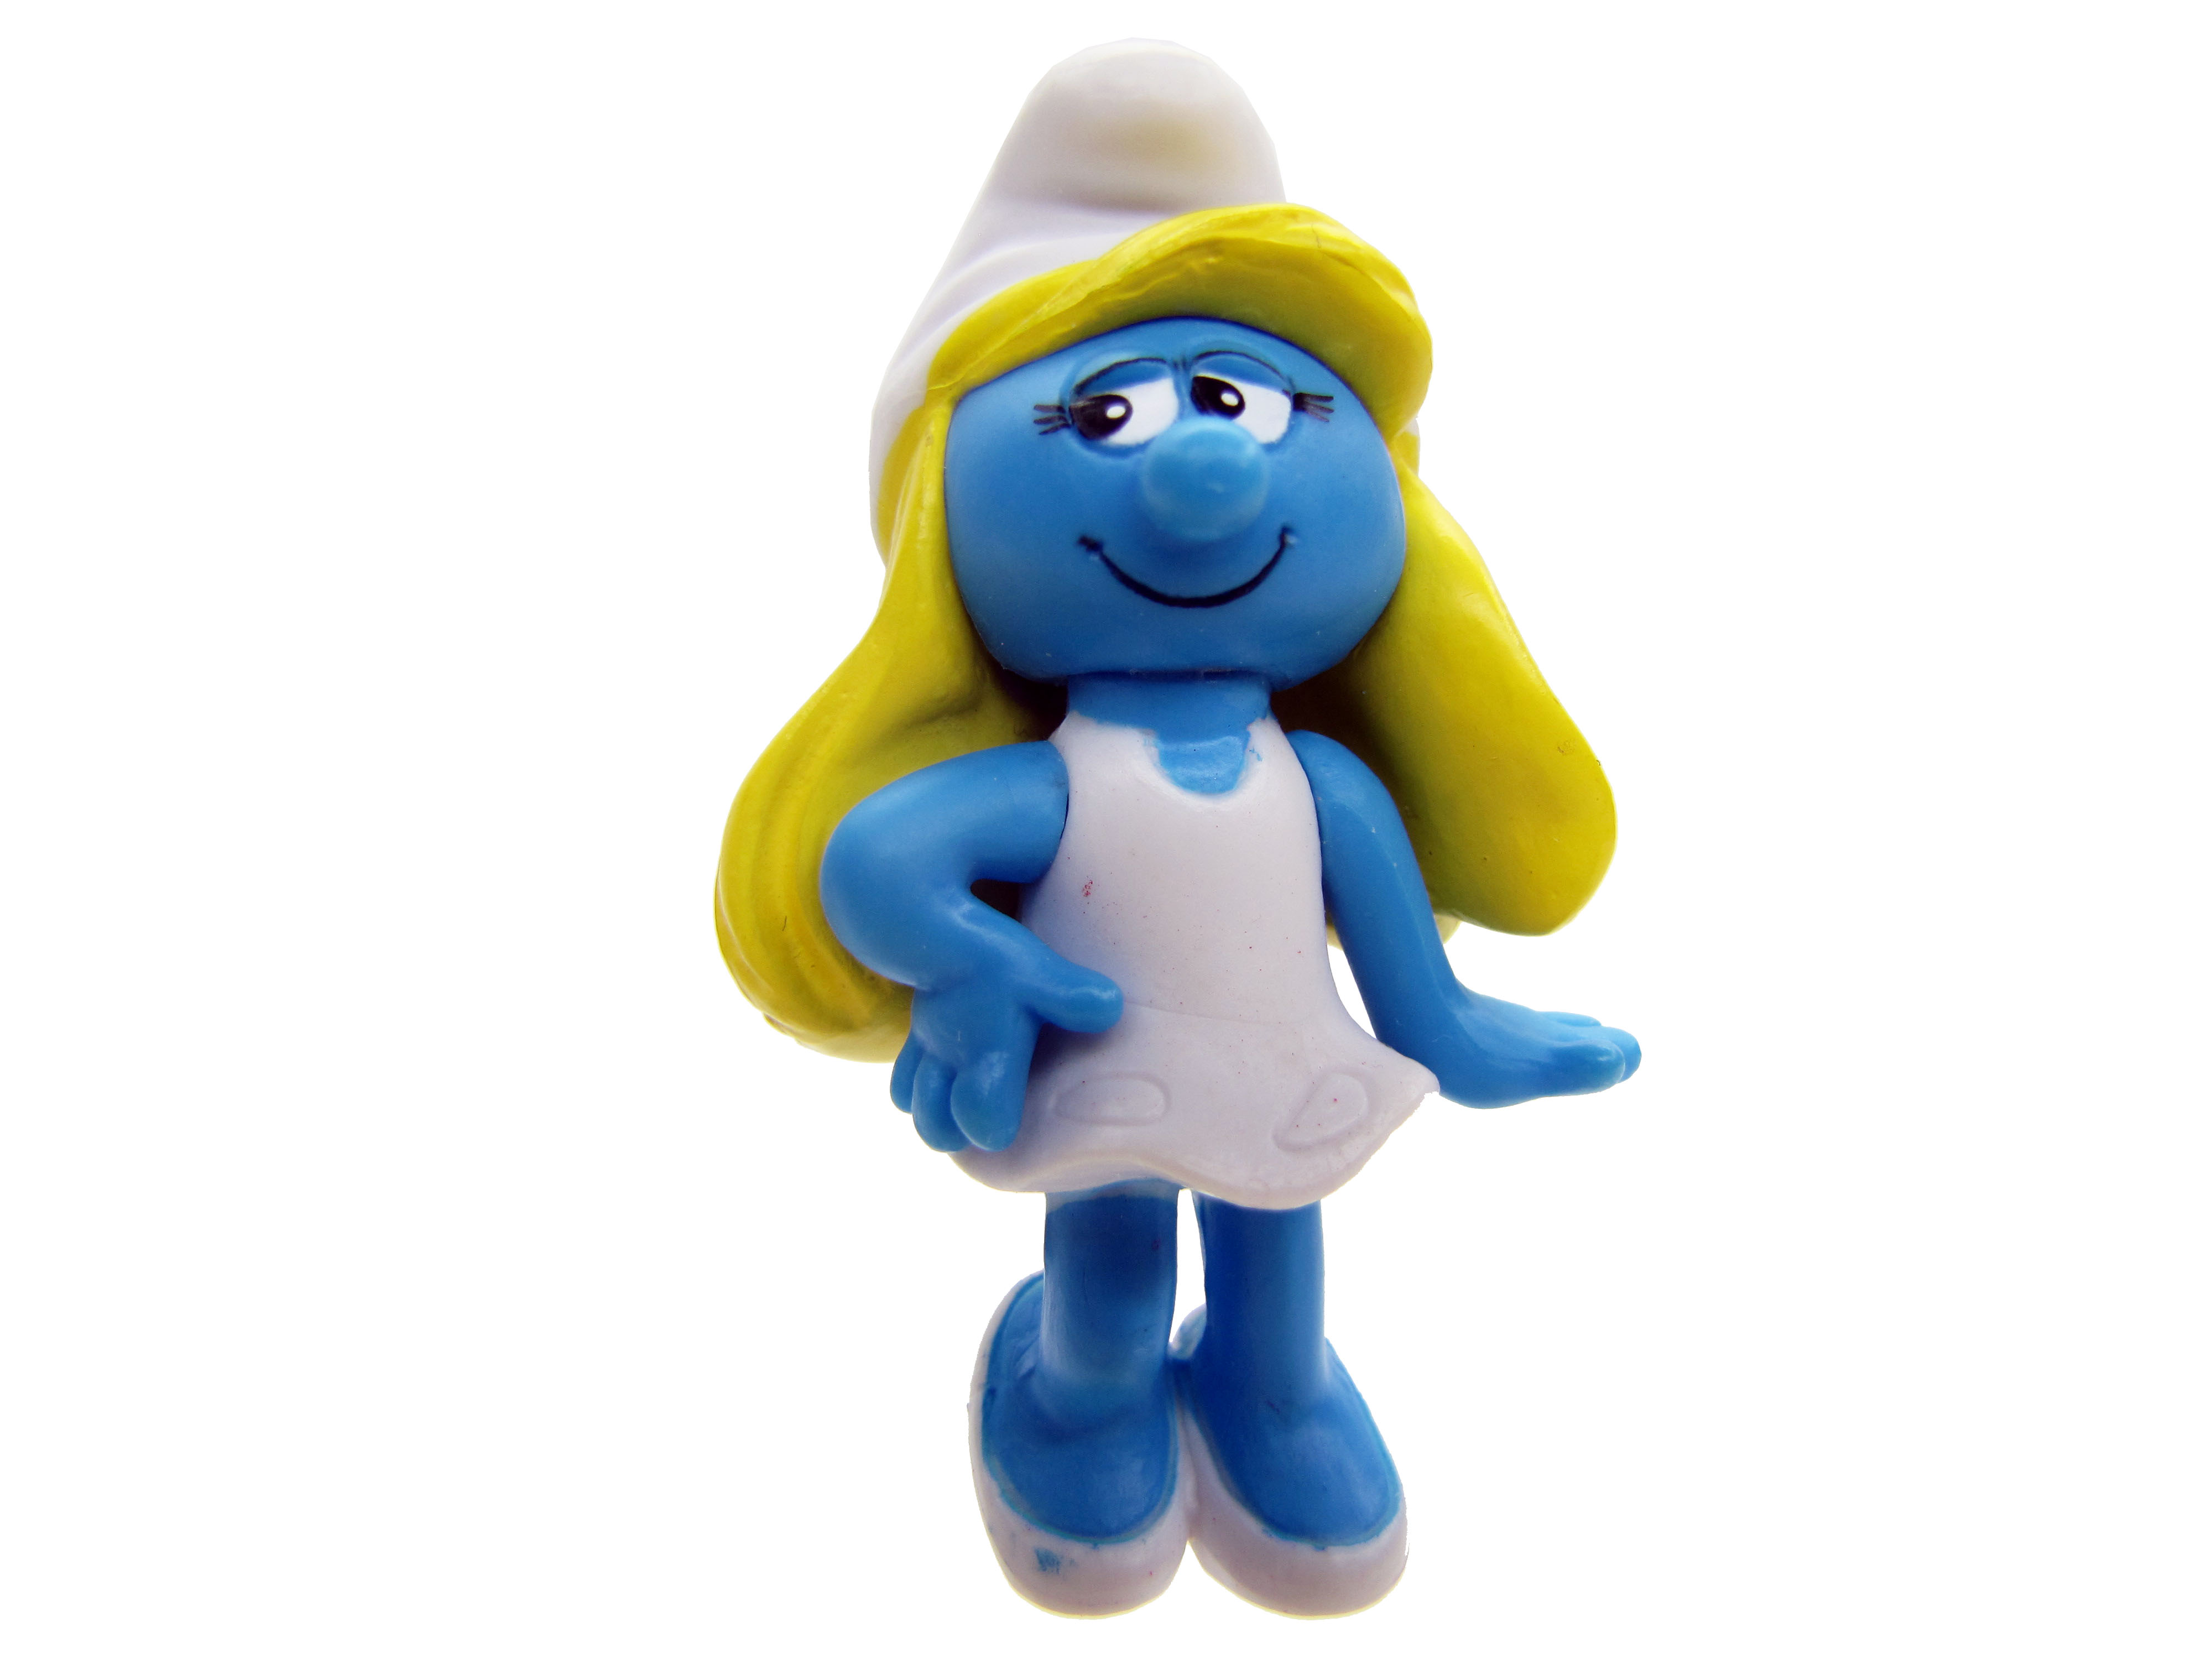 2008 The Smurfs Series 1: Smurfette Complete